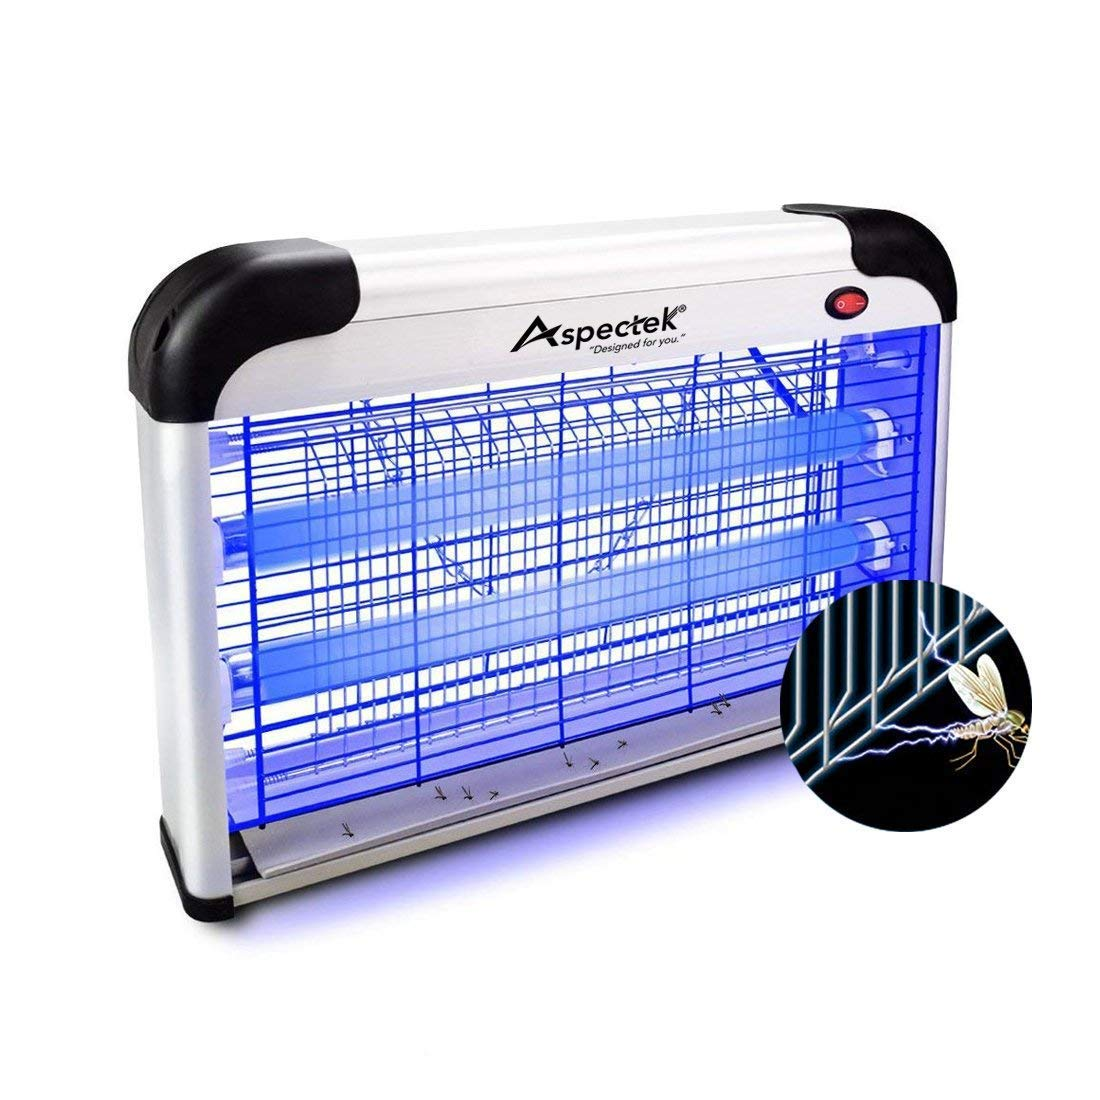 Aspectek Upgraded 20W Electronic Bug Zapper, Insect Killer - Mosquito, Fly, Moth, Wasp, Beetle & Other pests Killer for Indoor Residential & Commercial (20W Home Bug Zapper)